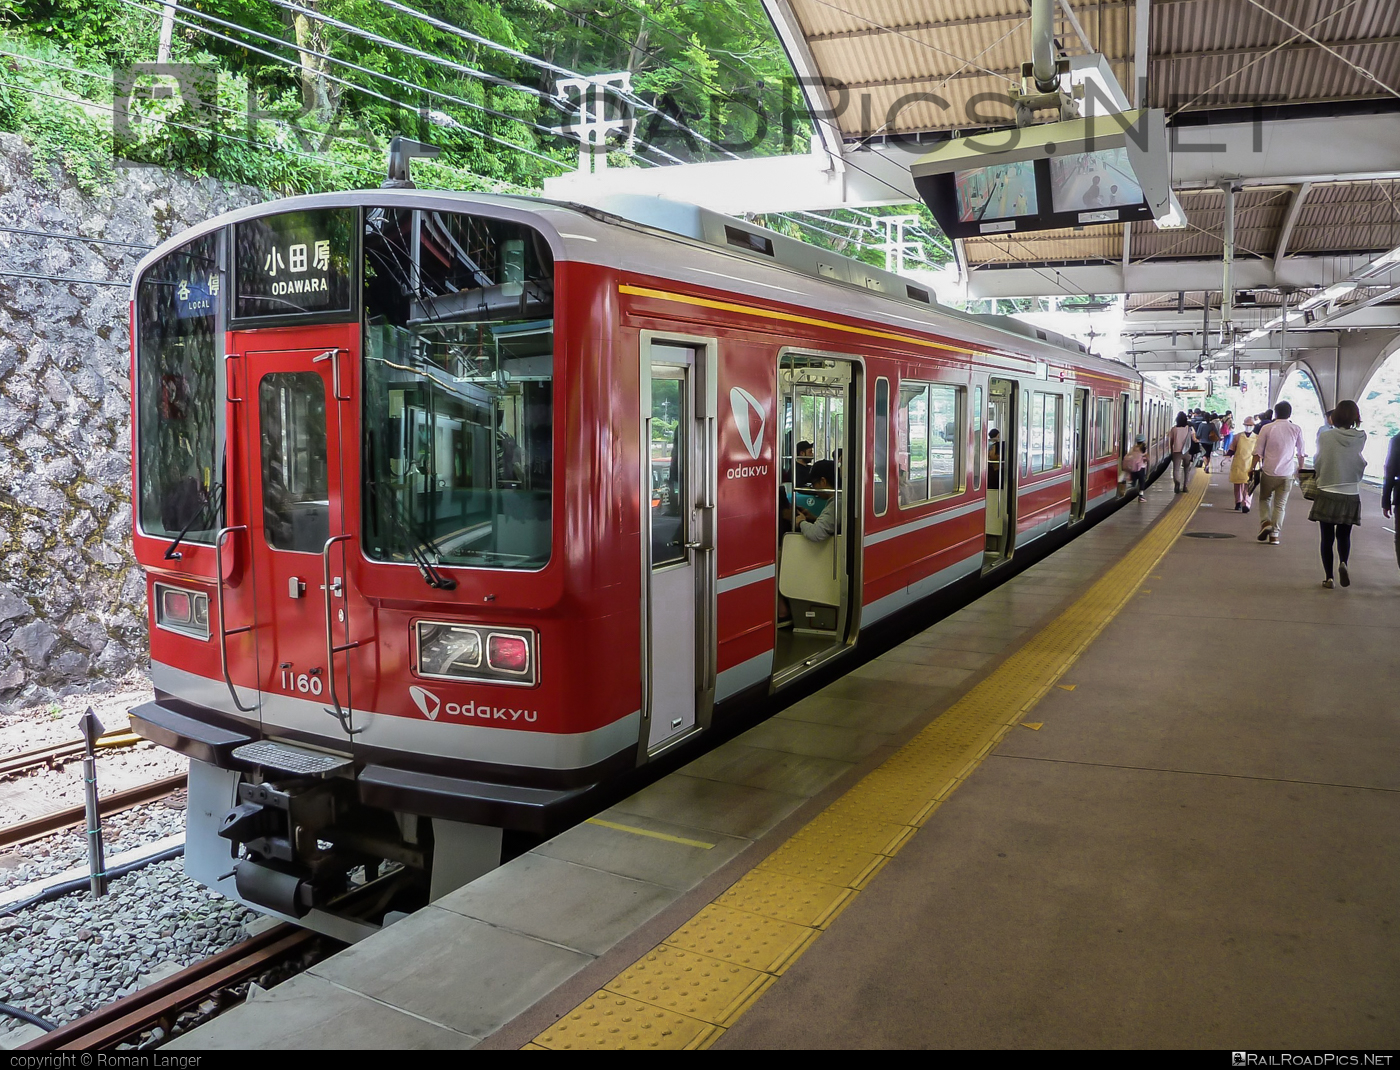 Odakyu Series 1000 - 1160 operated by Odakyu Electric Railway #OdakyuElectricRailway #odakyu #odakyu1000 #odakyu1000series #odakyuseries1000